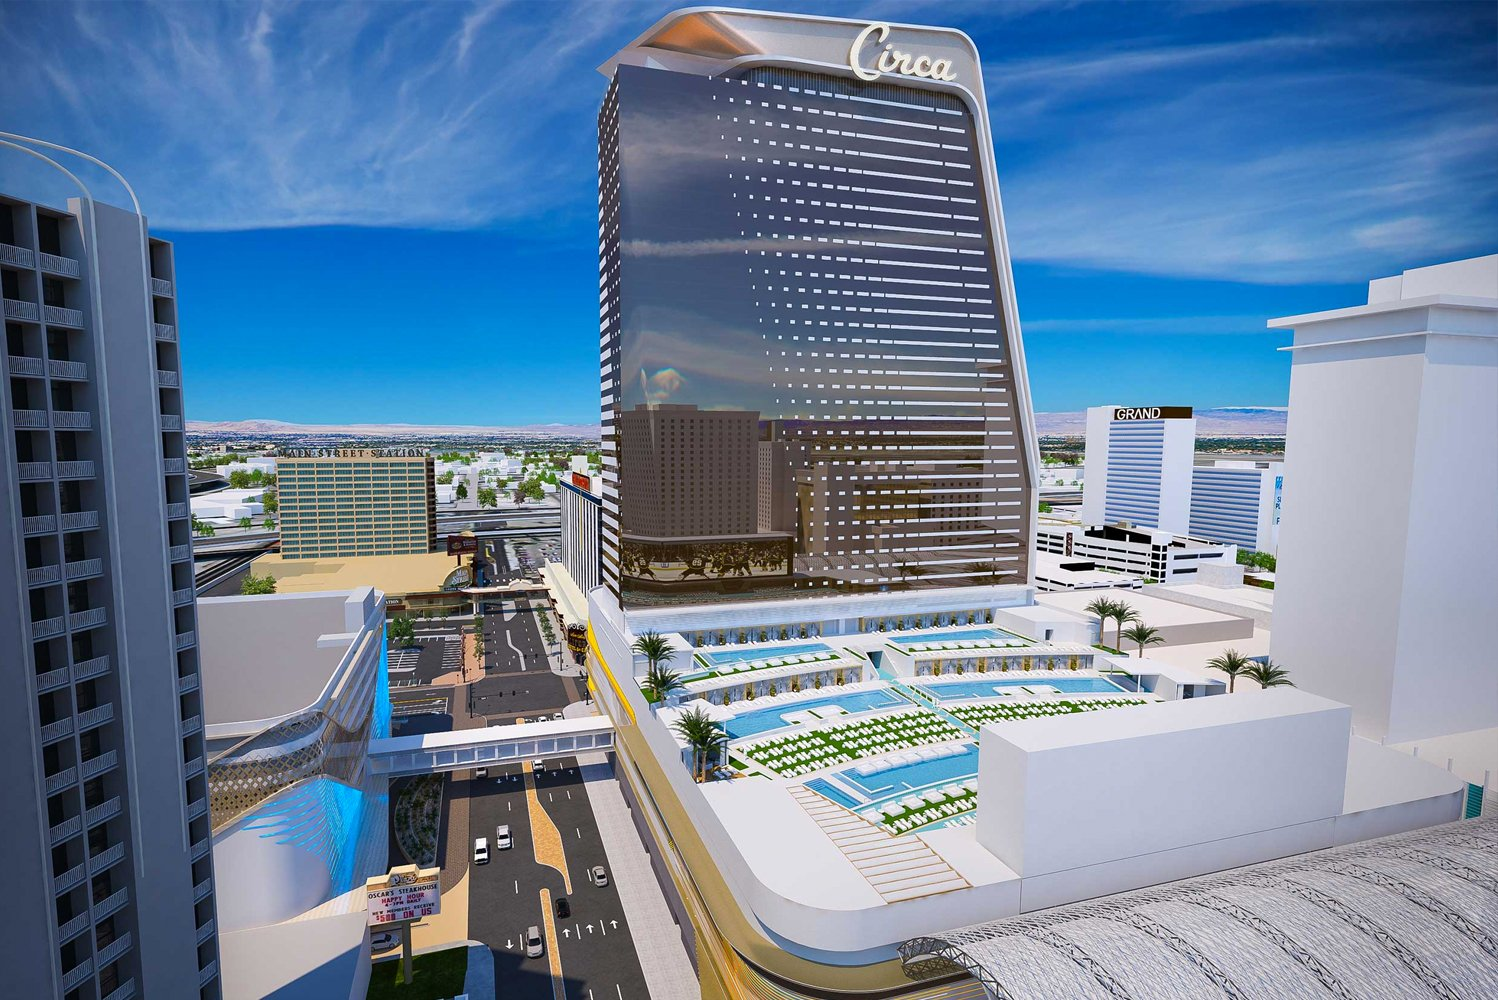 Developers and brothers Derek and Greg Stevens unveiled plans for Circa Resort & Casino, a brand-new integrated gaming resort in Downtown Las Vegas.